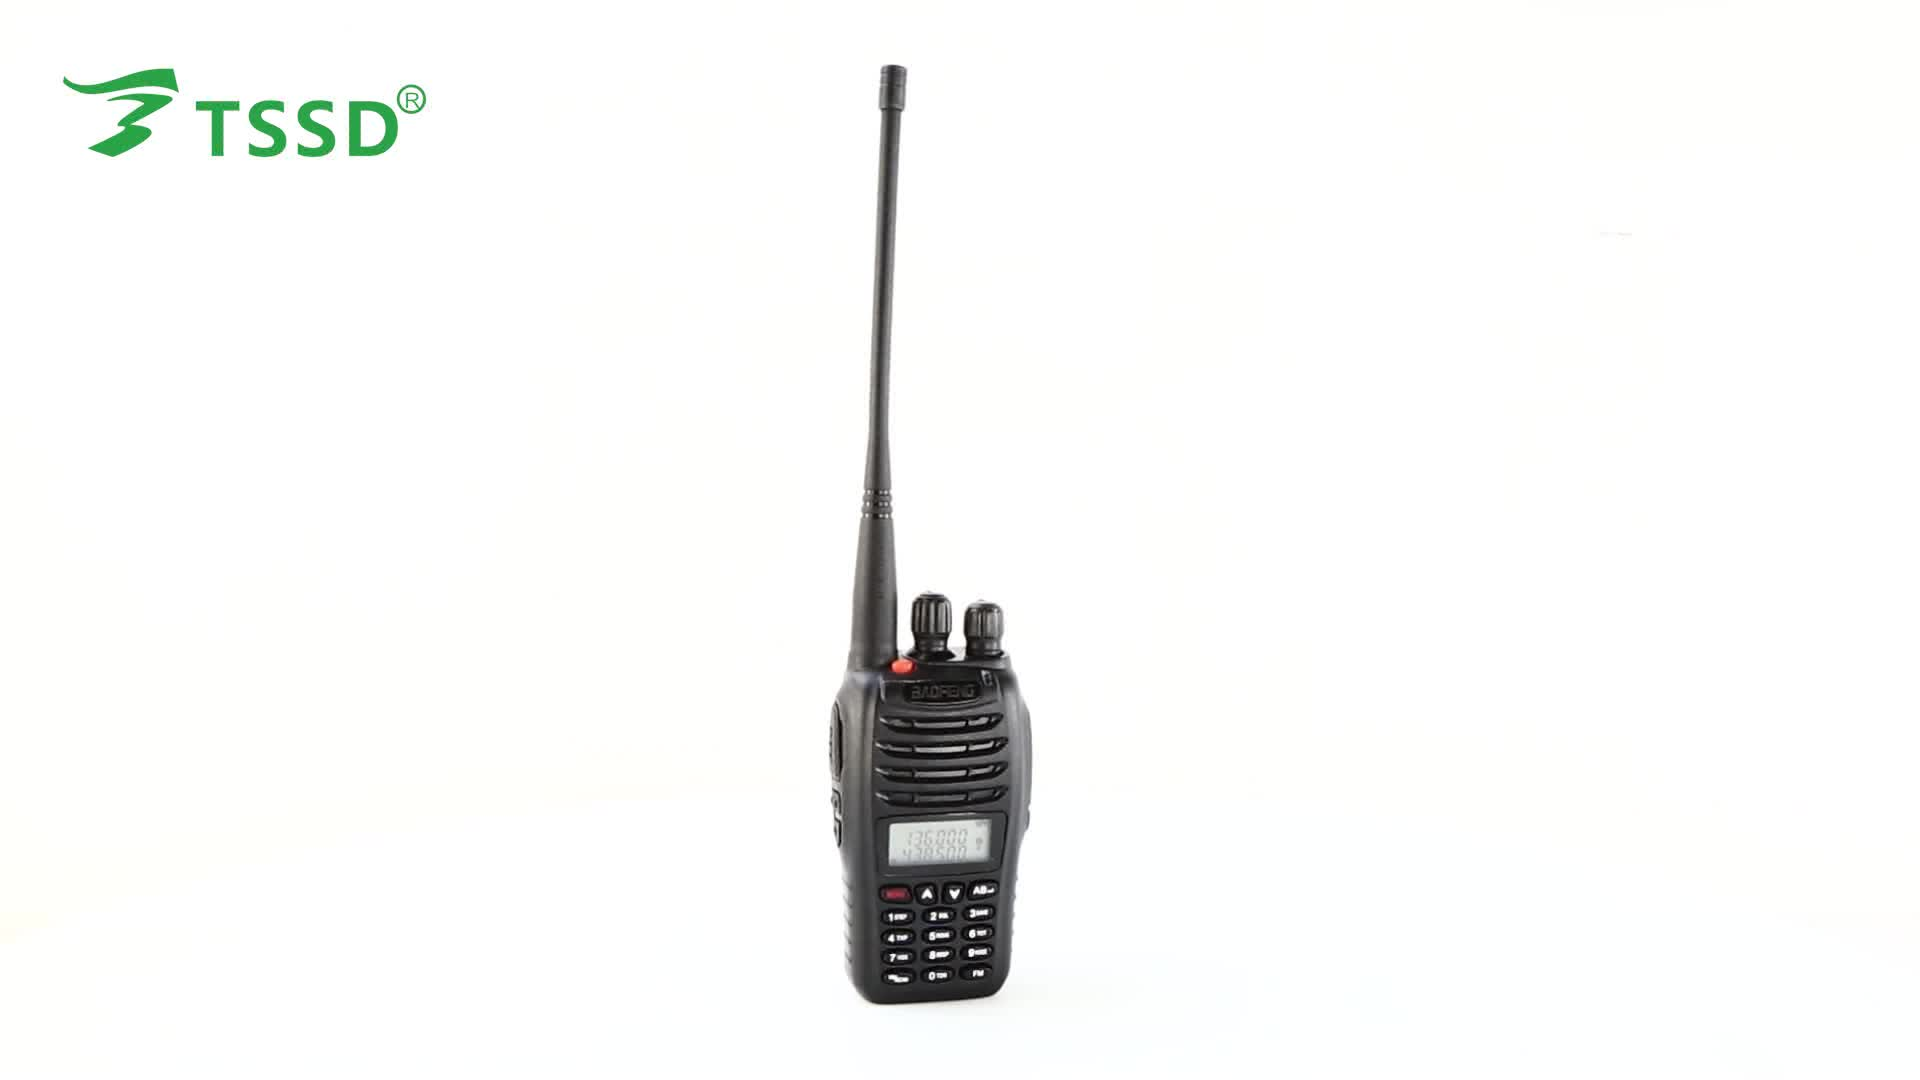 Uhf Vhf Baofeng Uv B5 Walkie Talkie Keyboard